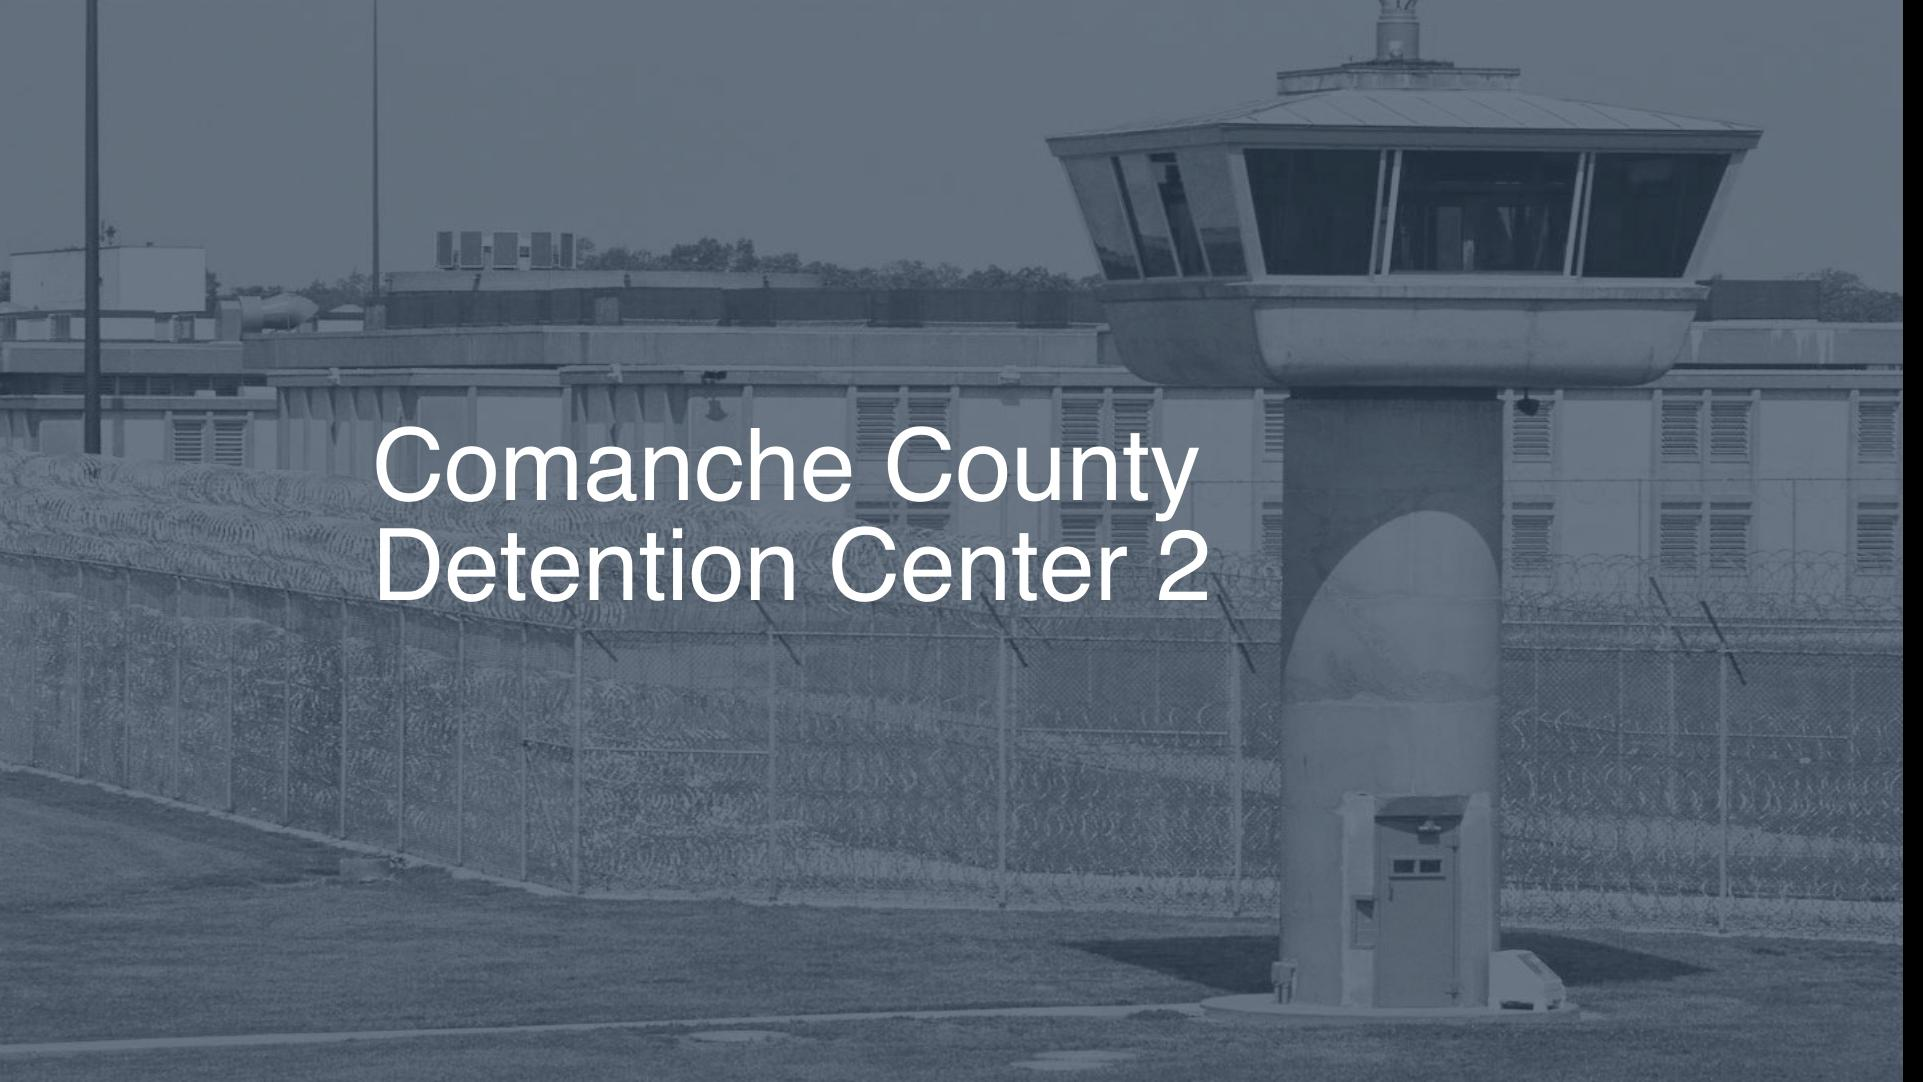 Comanche County Detention Center Inmate Search, Lookup & Services